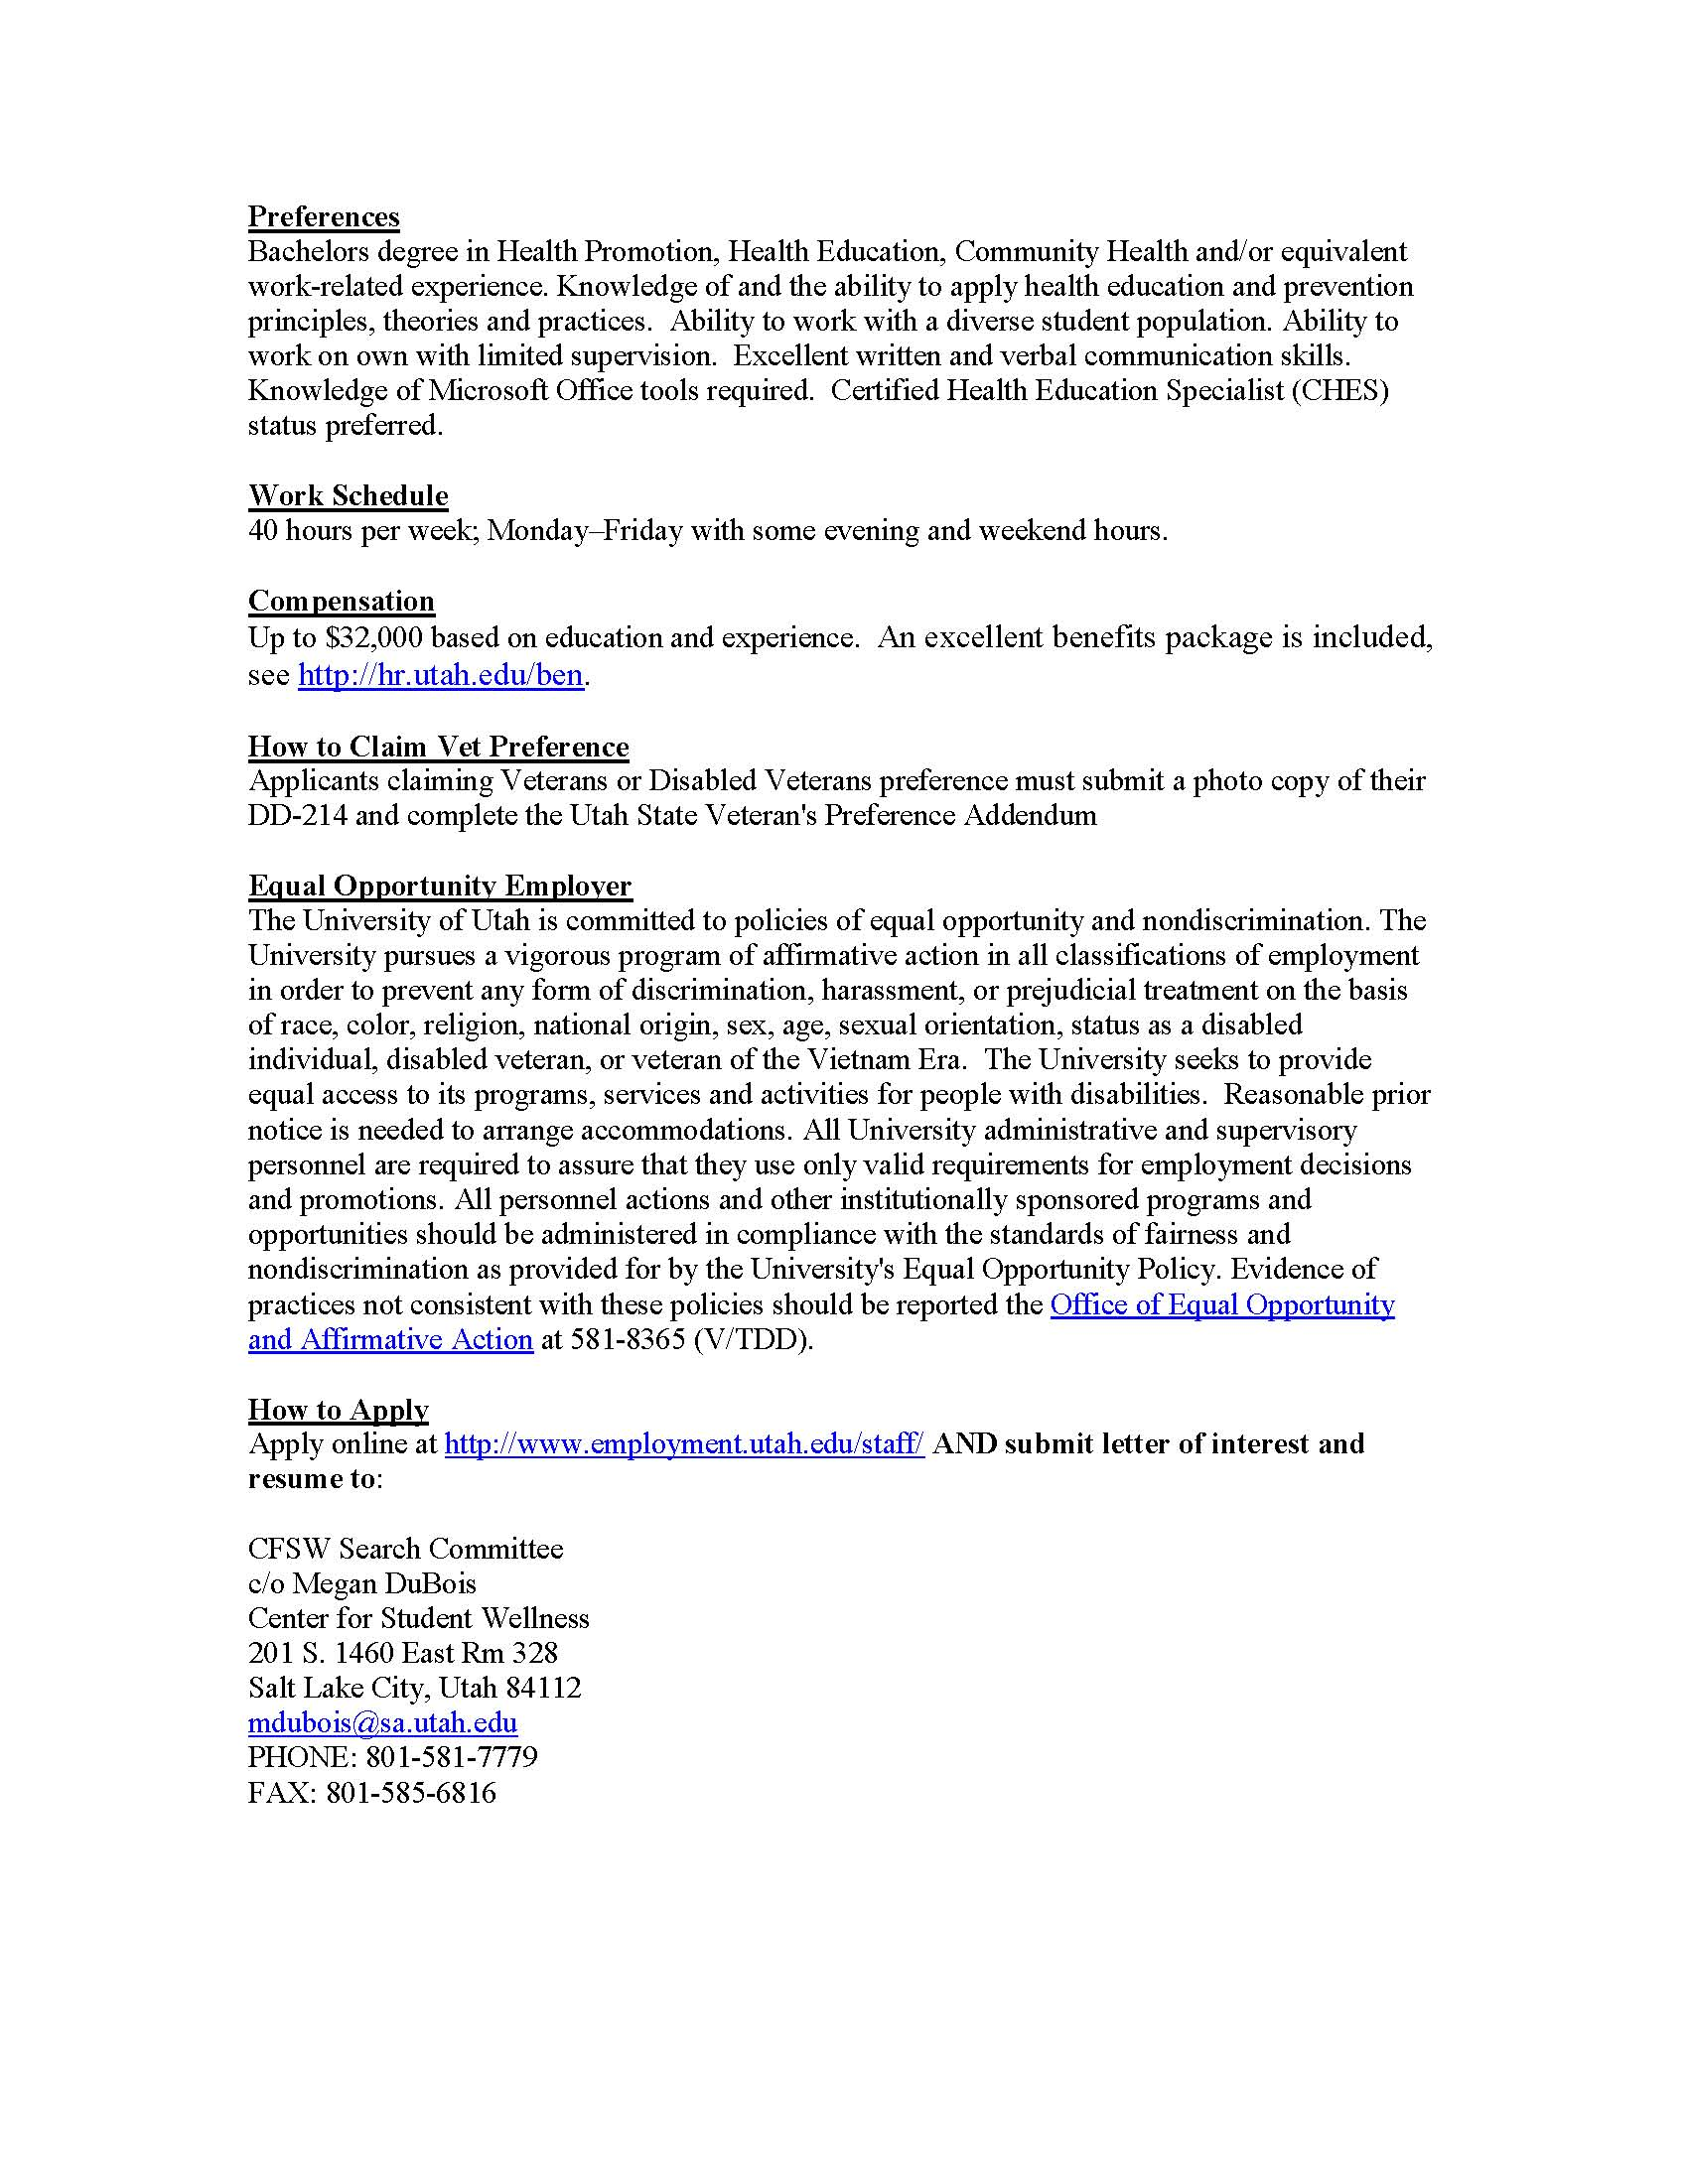 Public Health Alumni BYU Public Health – Medical Writer Job Description